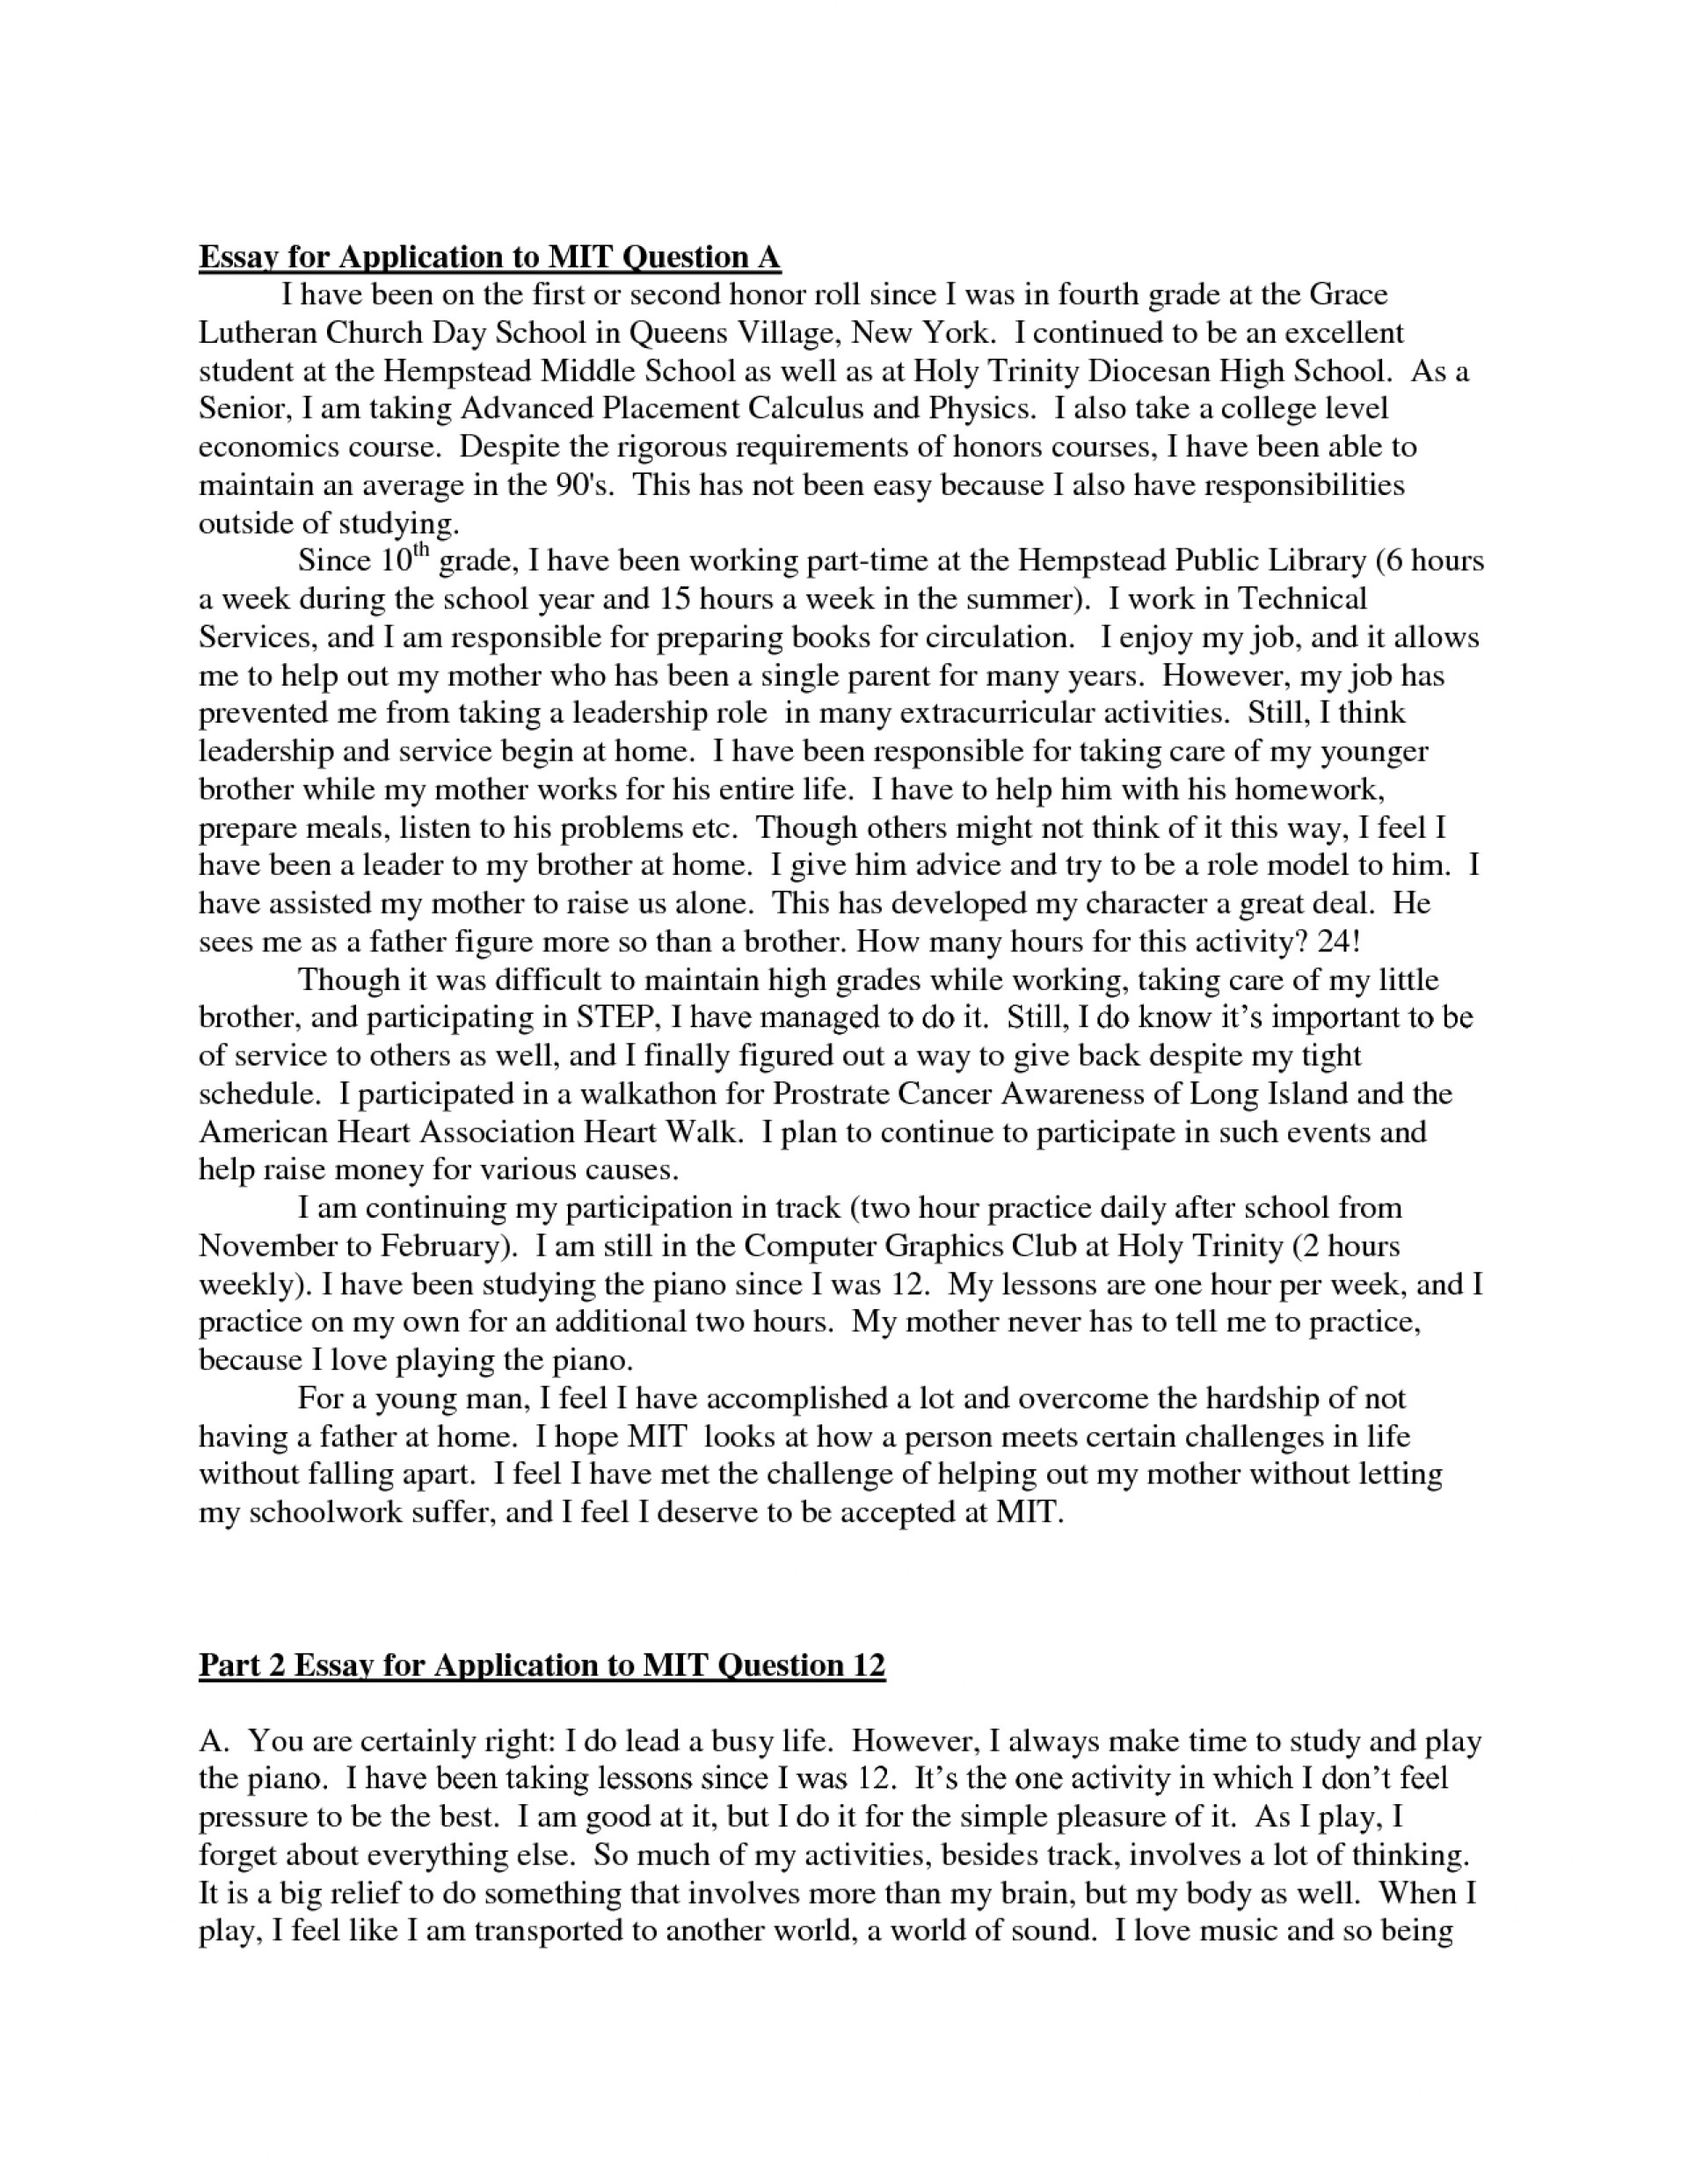 003 College Acceptance Essay Millicent Rogers Museum Related Keywords Long Tail Keywordsking Entrance Sample L Striking Application Template App Topics Samples 1920